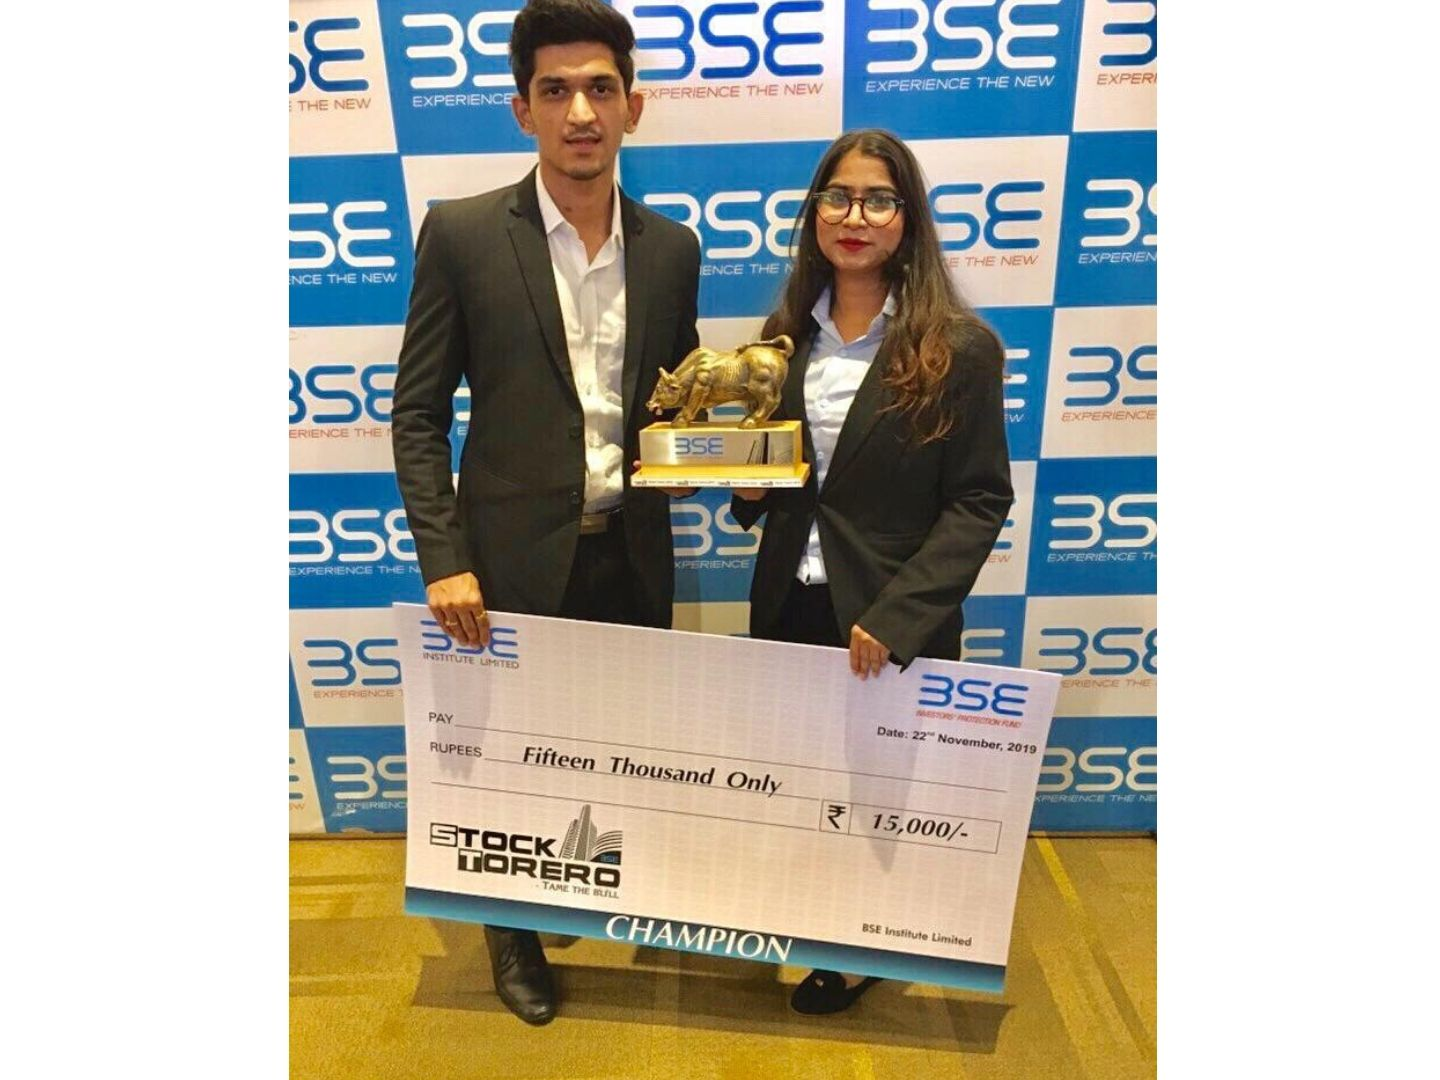 Our MBA students won first place at BSE Institute's annual Financial Trading Contest